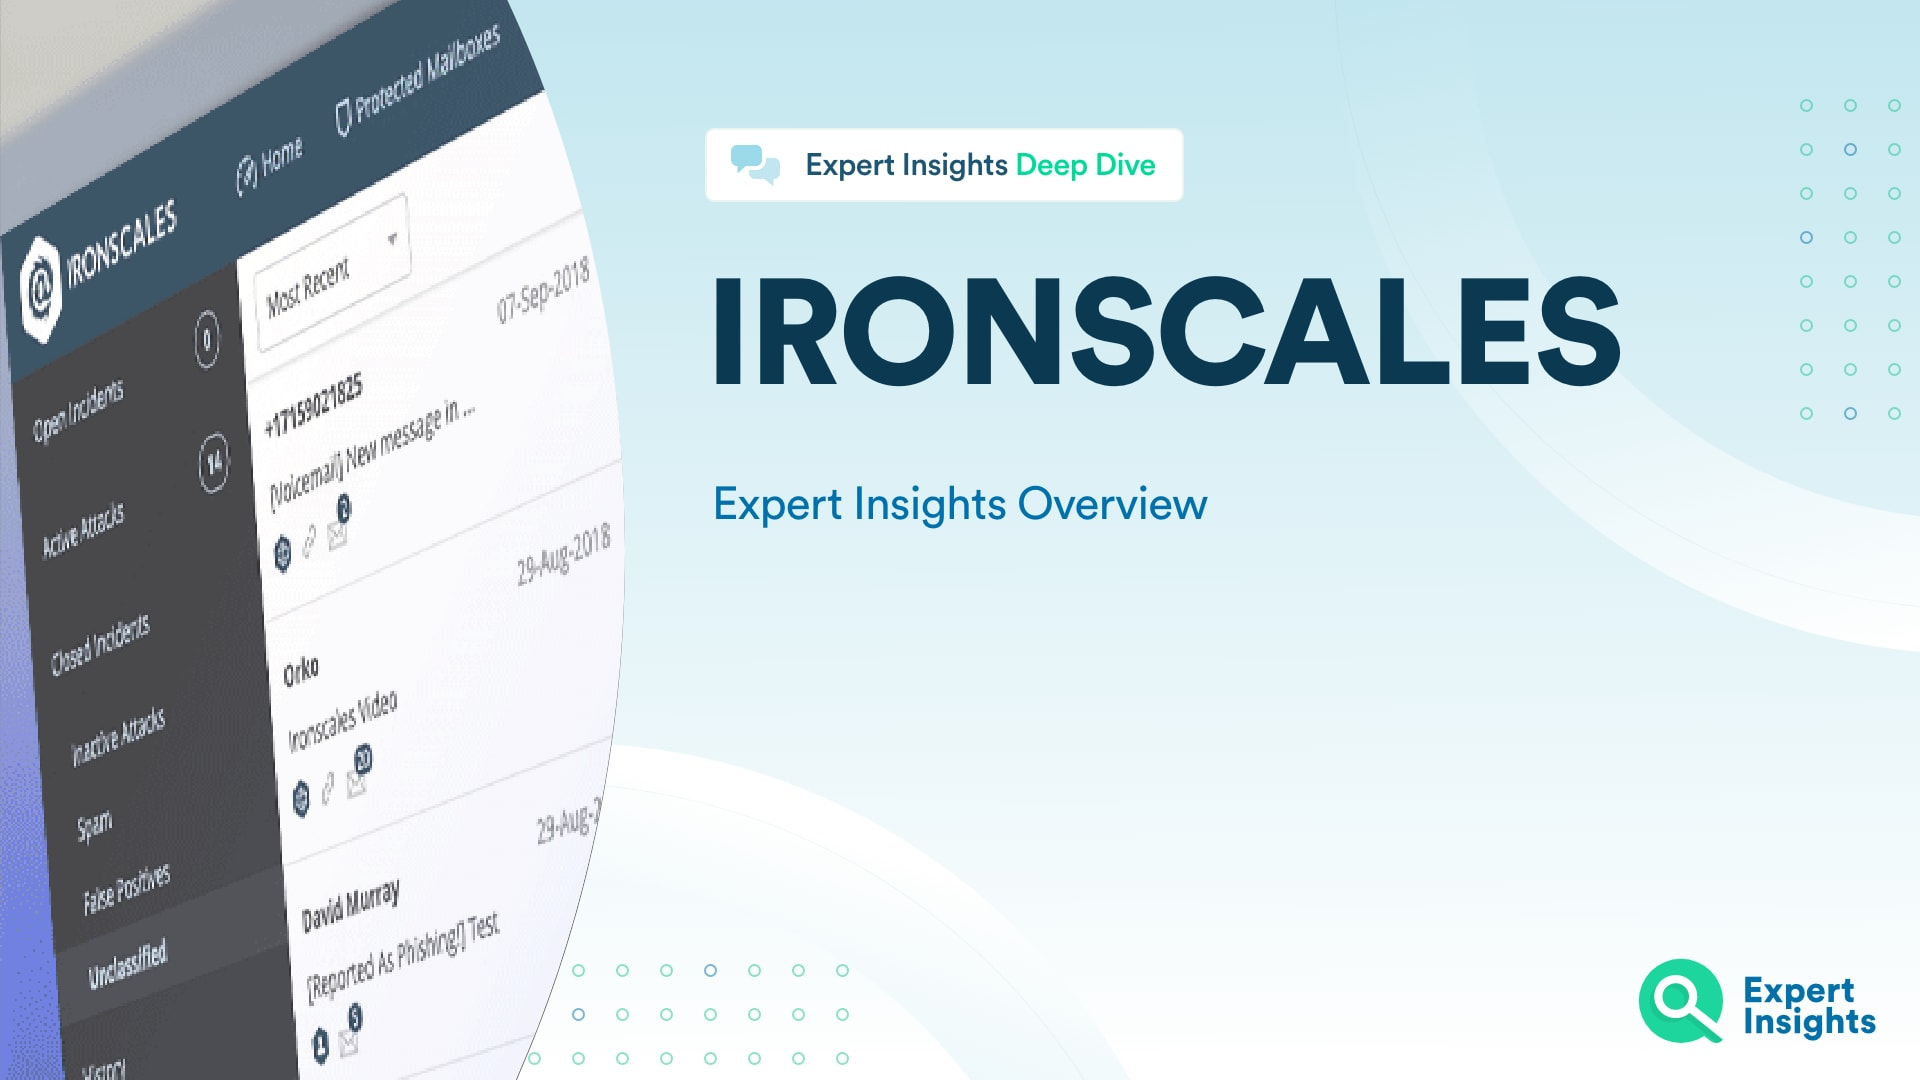 Ironscales Overview